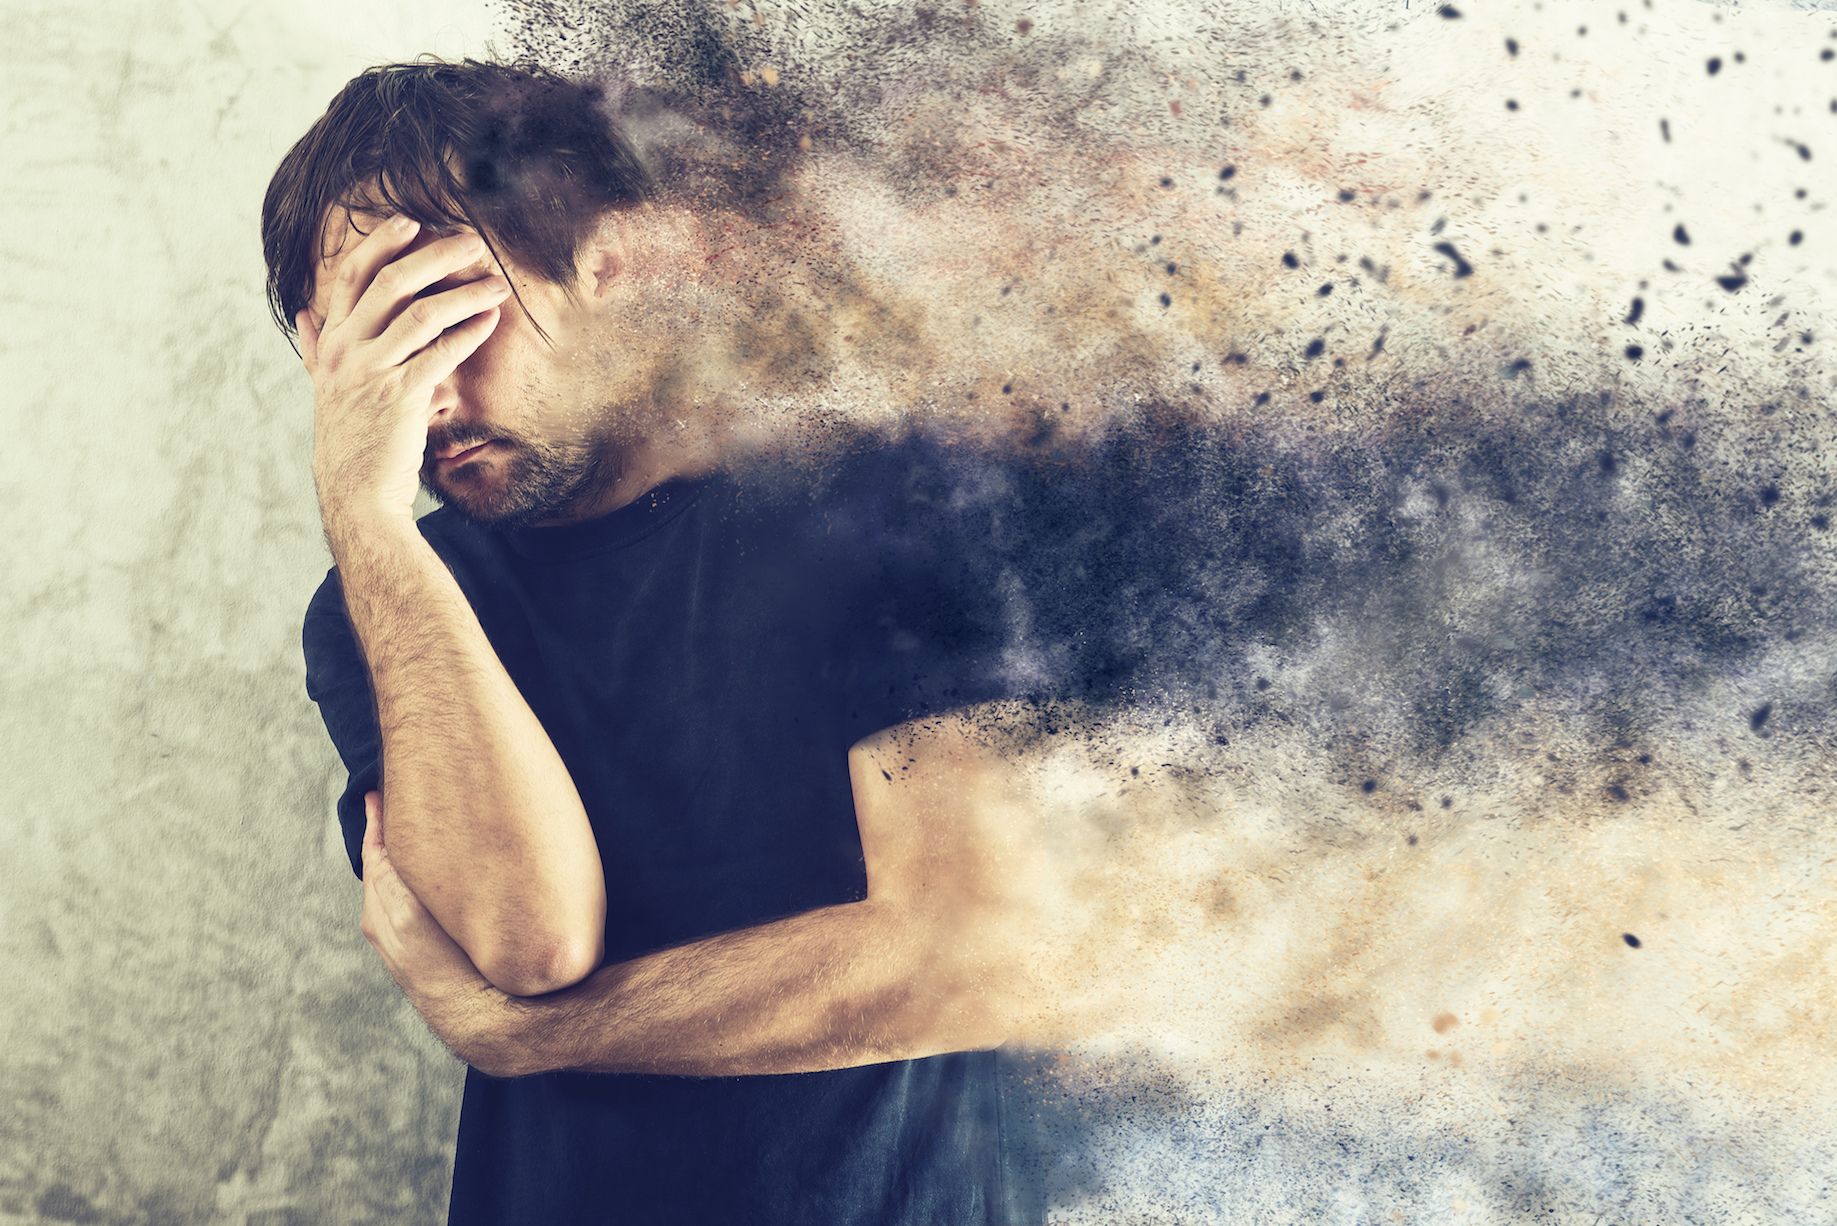 According to a new study by the American Psychological Assocation, individuals can suffer from mental health disorders as a result of climate change.